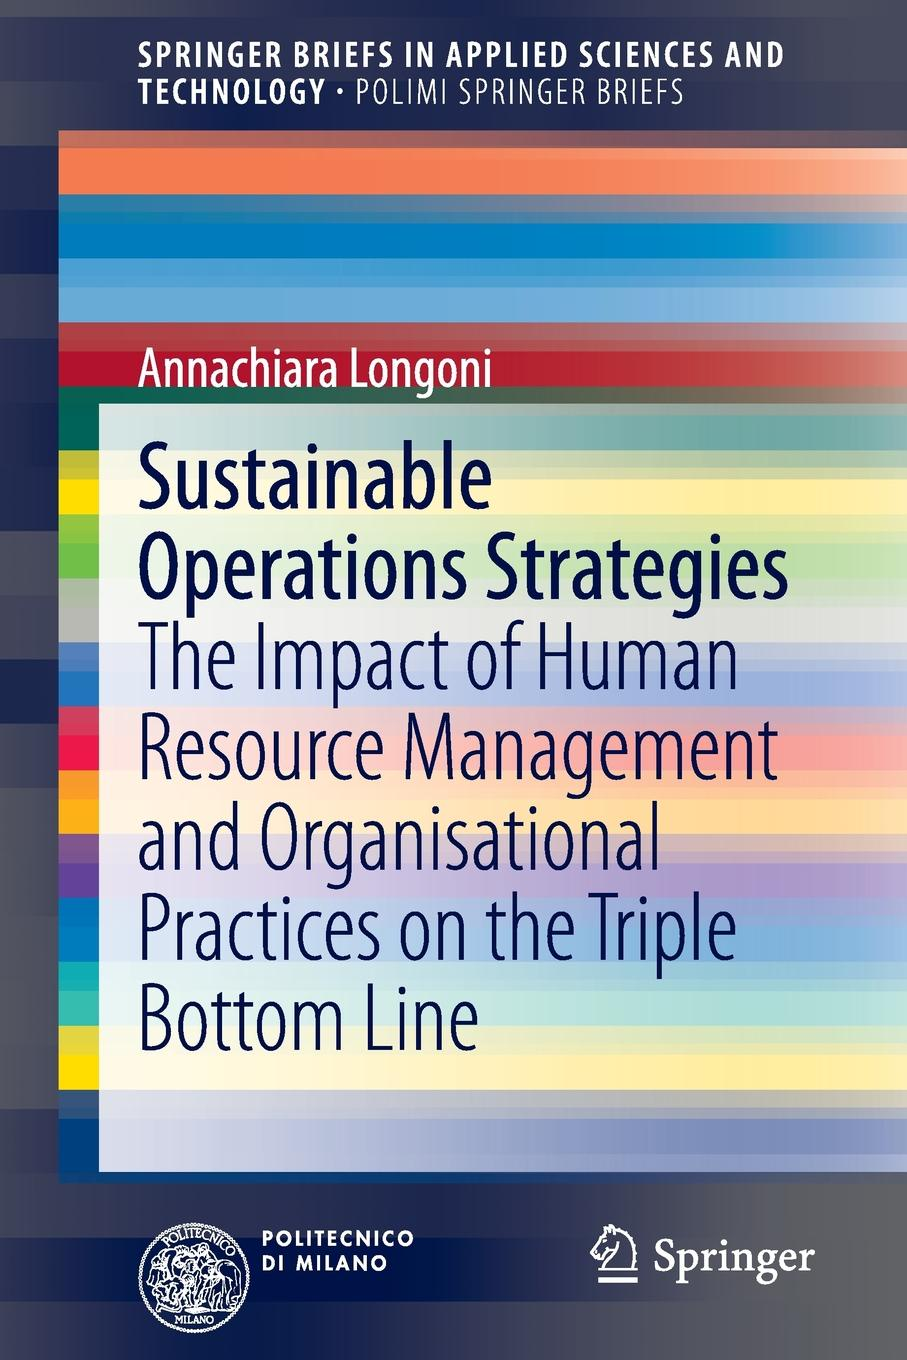 Annachiara Longoni Sustainable Operations Strategies. The Impact of Human Resource Management and Organisational Practices on the Triple Bottom Line karl weber talent transformation and the triple bottom line how companies can leverage human resources to achieve sustainable growth